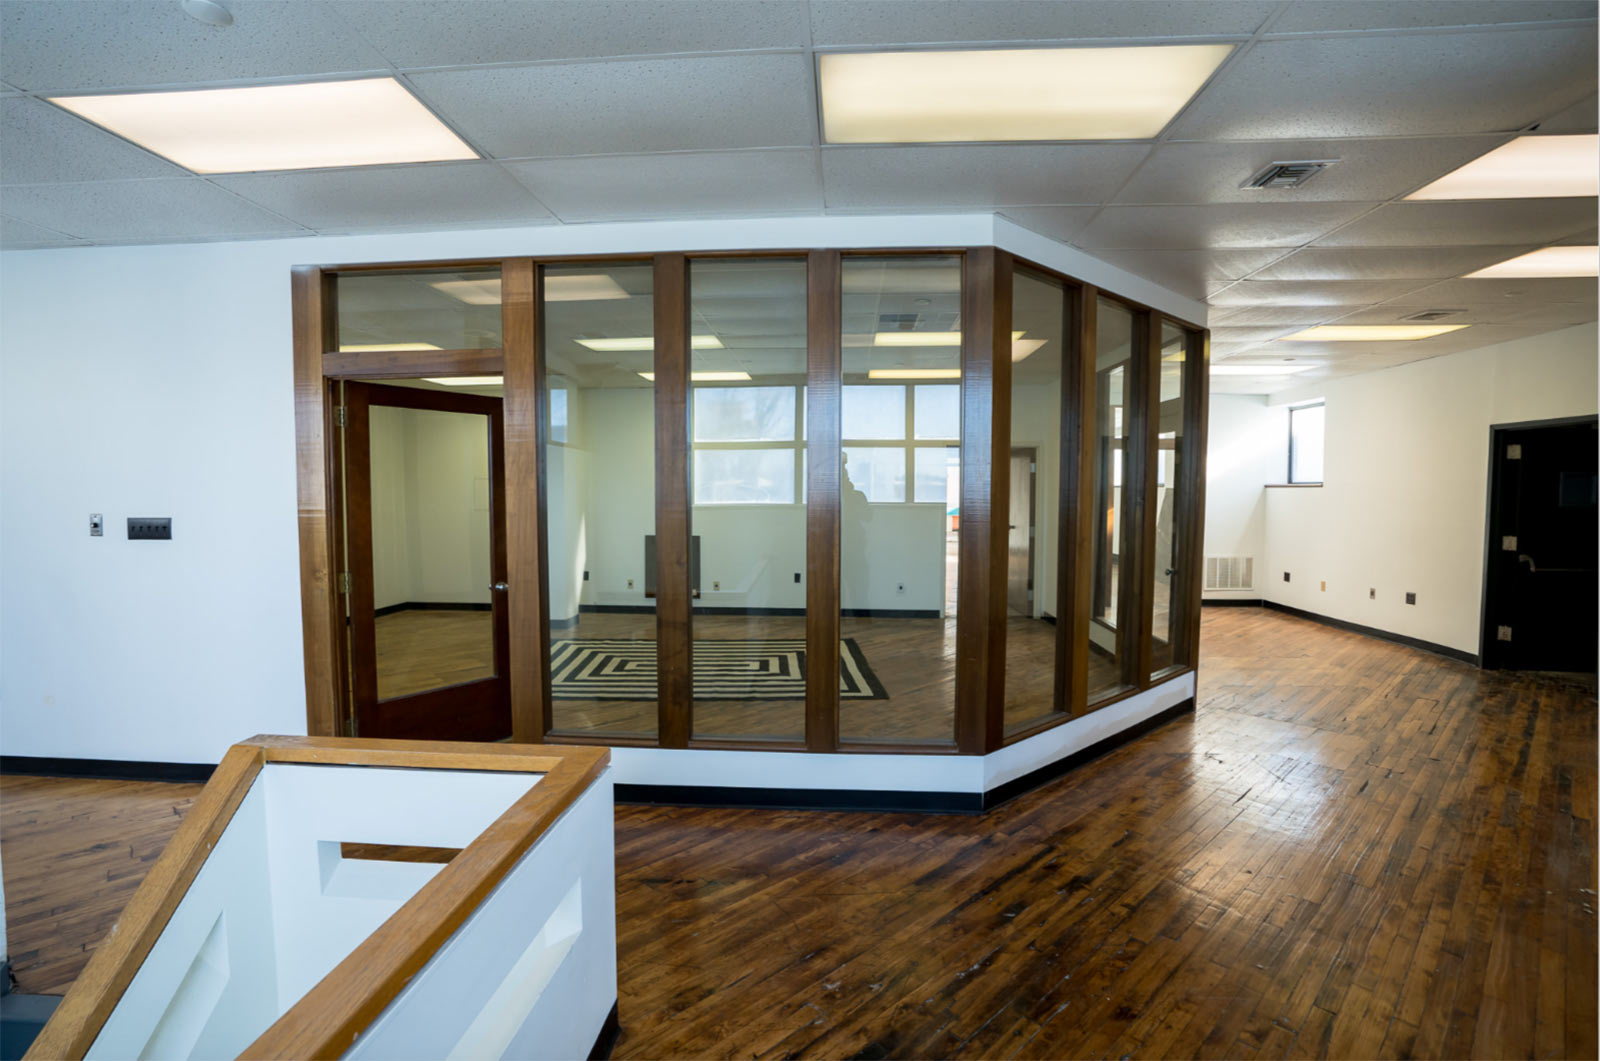 Interior Commercial Painting Project